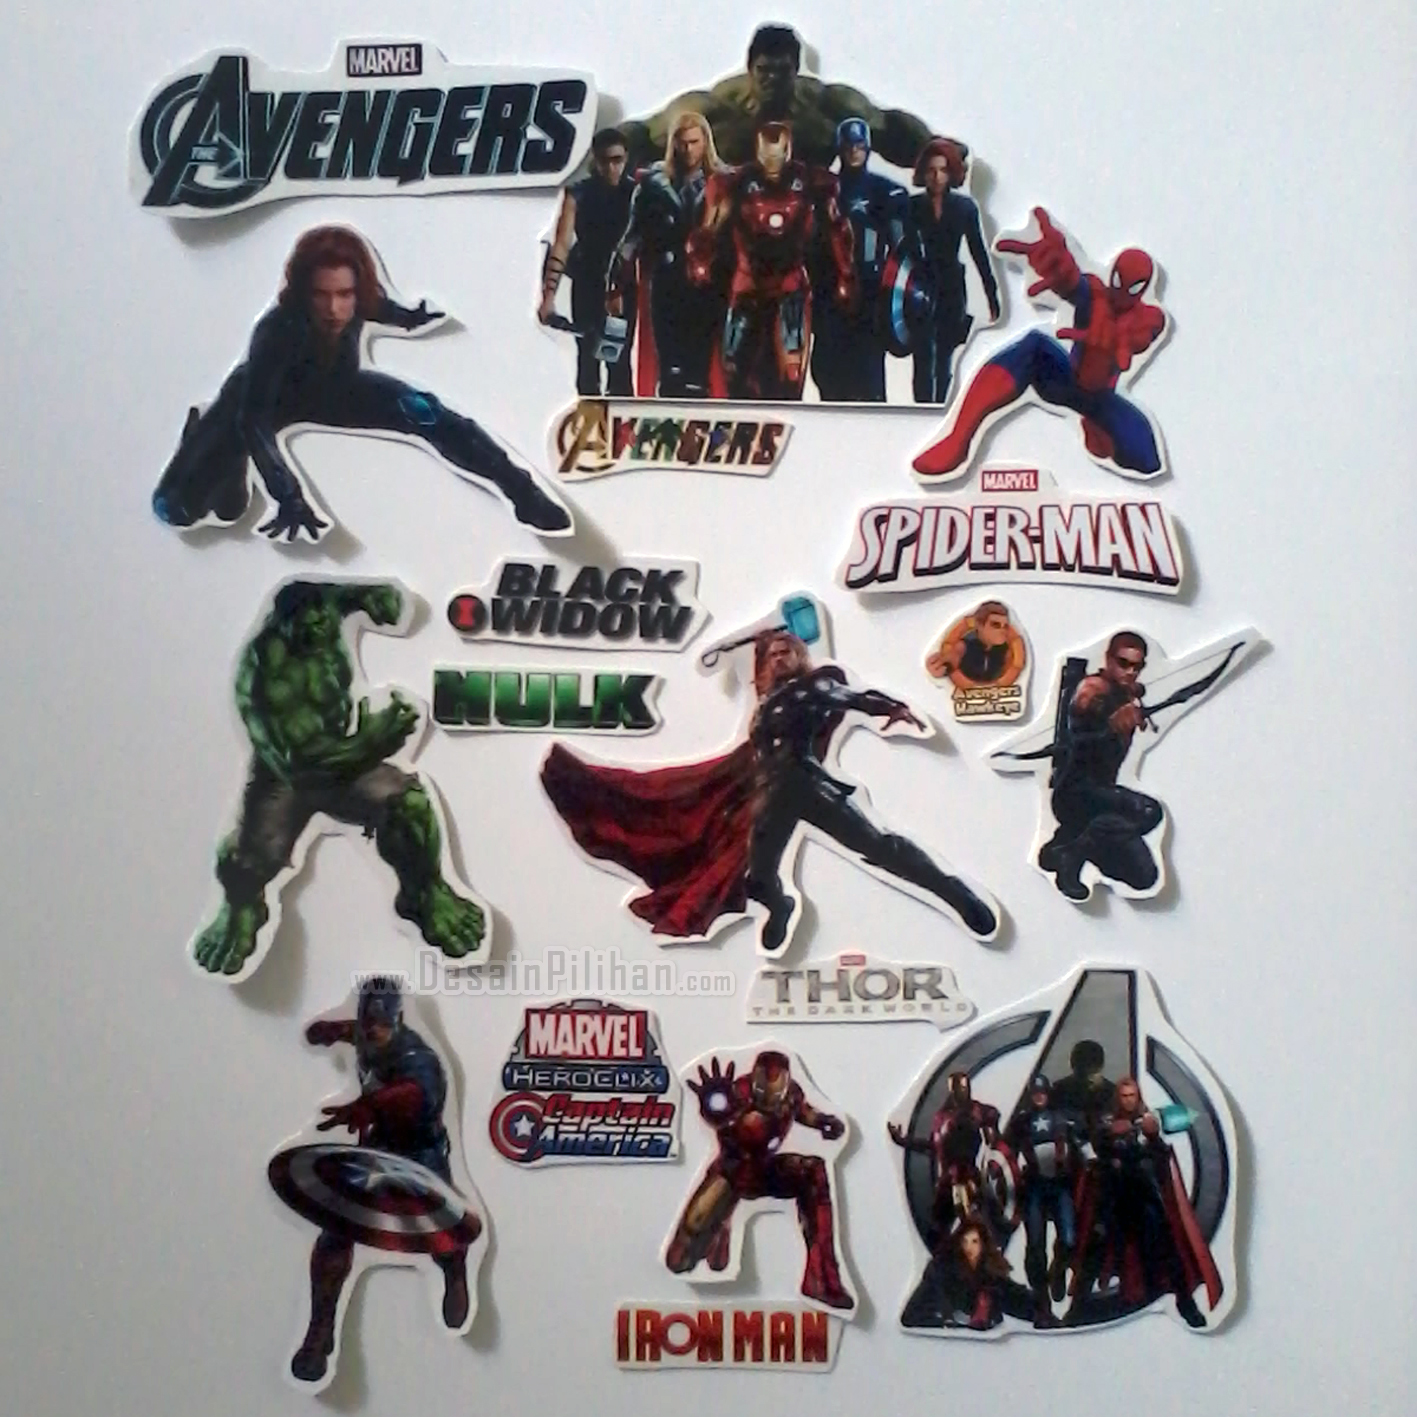 CUTTING STICKER TRANSPARAN CUSTOM, CUTTING STICKER THE AVENGERS, STICKER SPIDERMAN, STICKER BLACK WIDOW, STICKER HULK, STICKER THOR, STICKER IRON MAN, STICKER CAPTAIN AMERICA